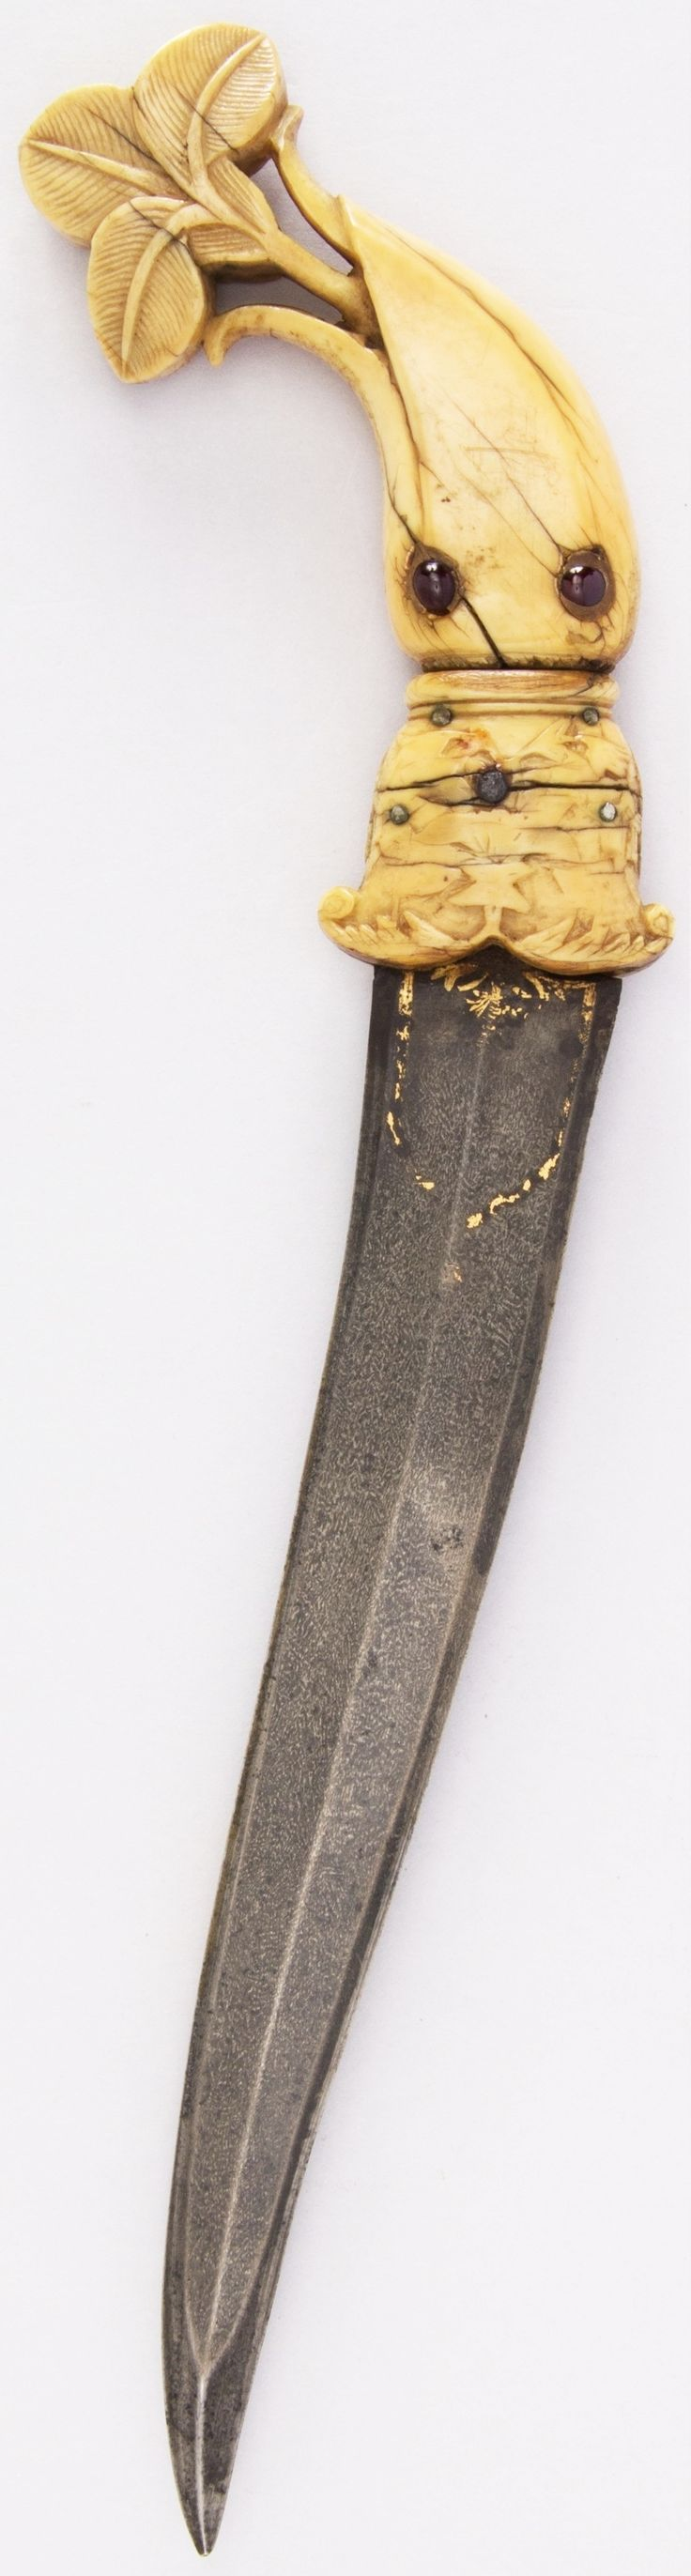 Indian khanjar, 18th century, wootz steel blade, ivory, gemstone, gold, H. 13 13/16 in. (35.1 cm); H. of blade 8 7/8 in. (22.5 cm); W. 4 in. (10.2 cm); Wt. 8.5 oz. (241 g), Met Museum, Bequest of George C. Stone, 1935.